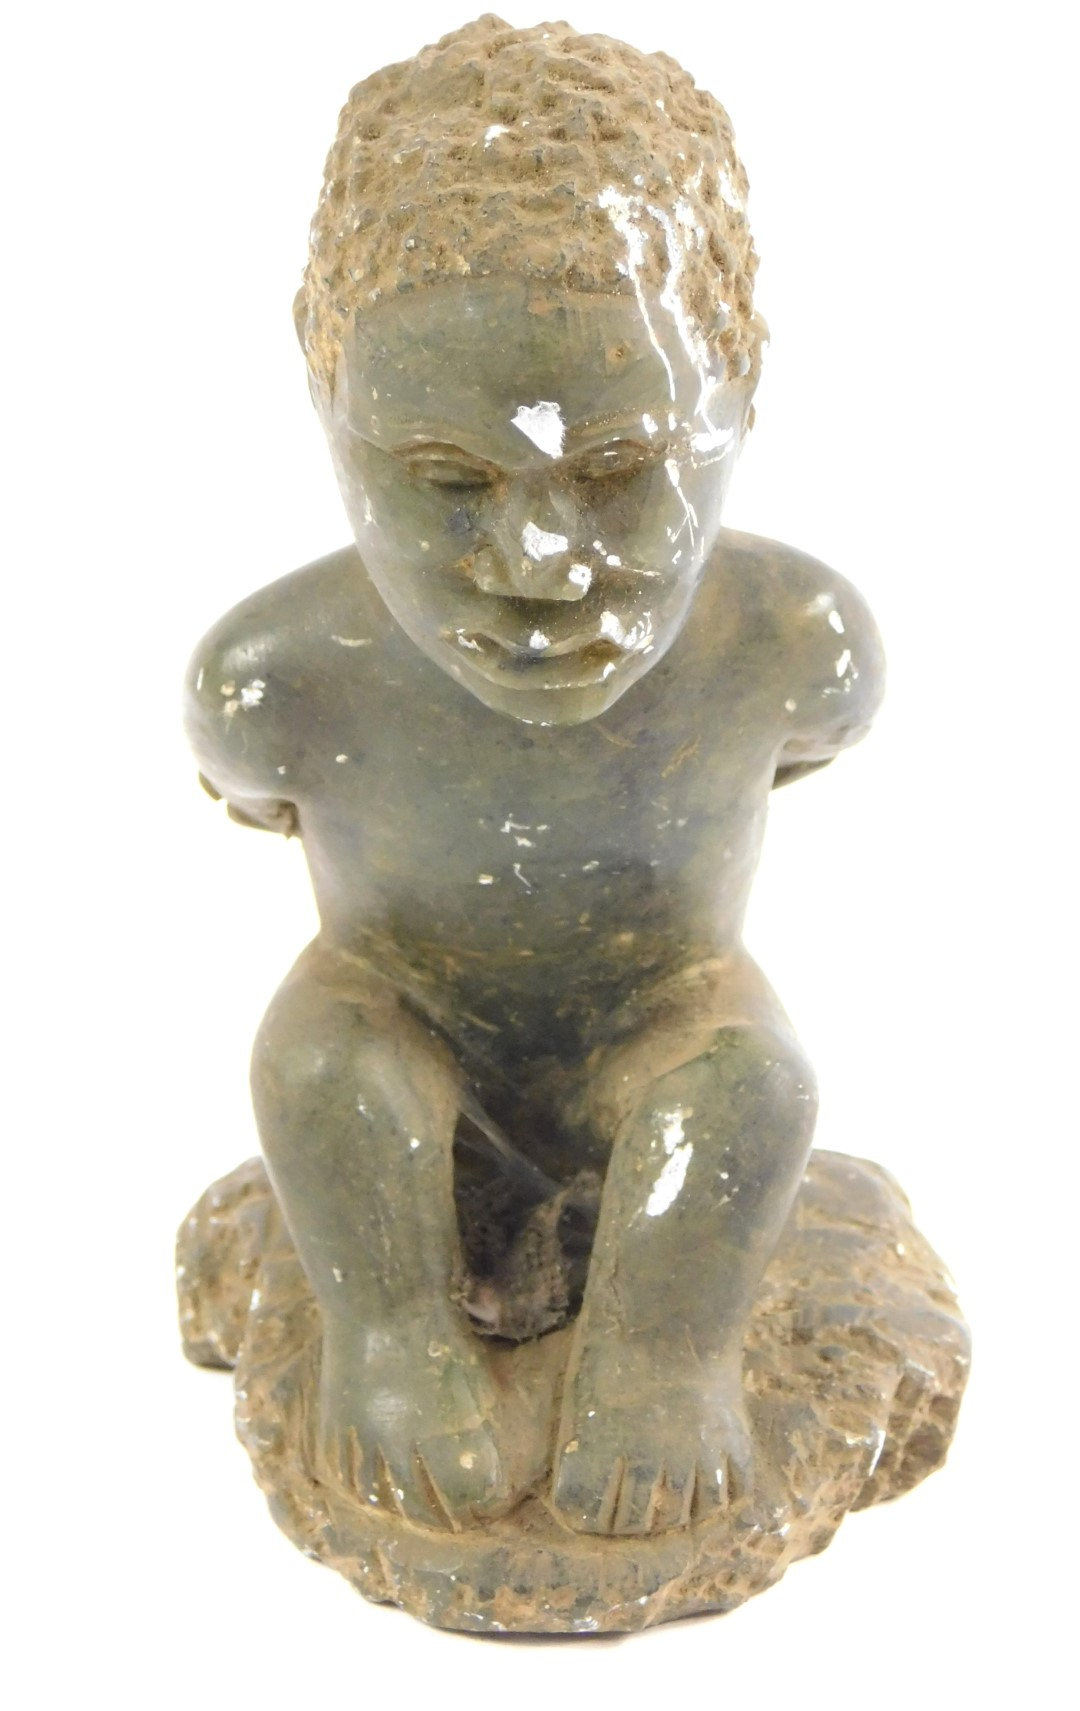 Lot 49 - A Zimbabwean hardstone sculpture of a man, modelled naked seated on the ground with his arms wrapped